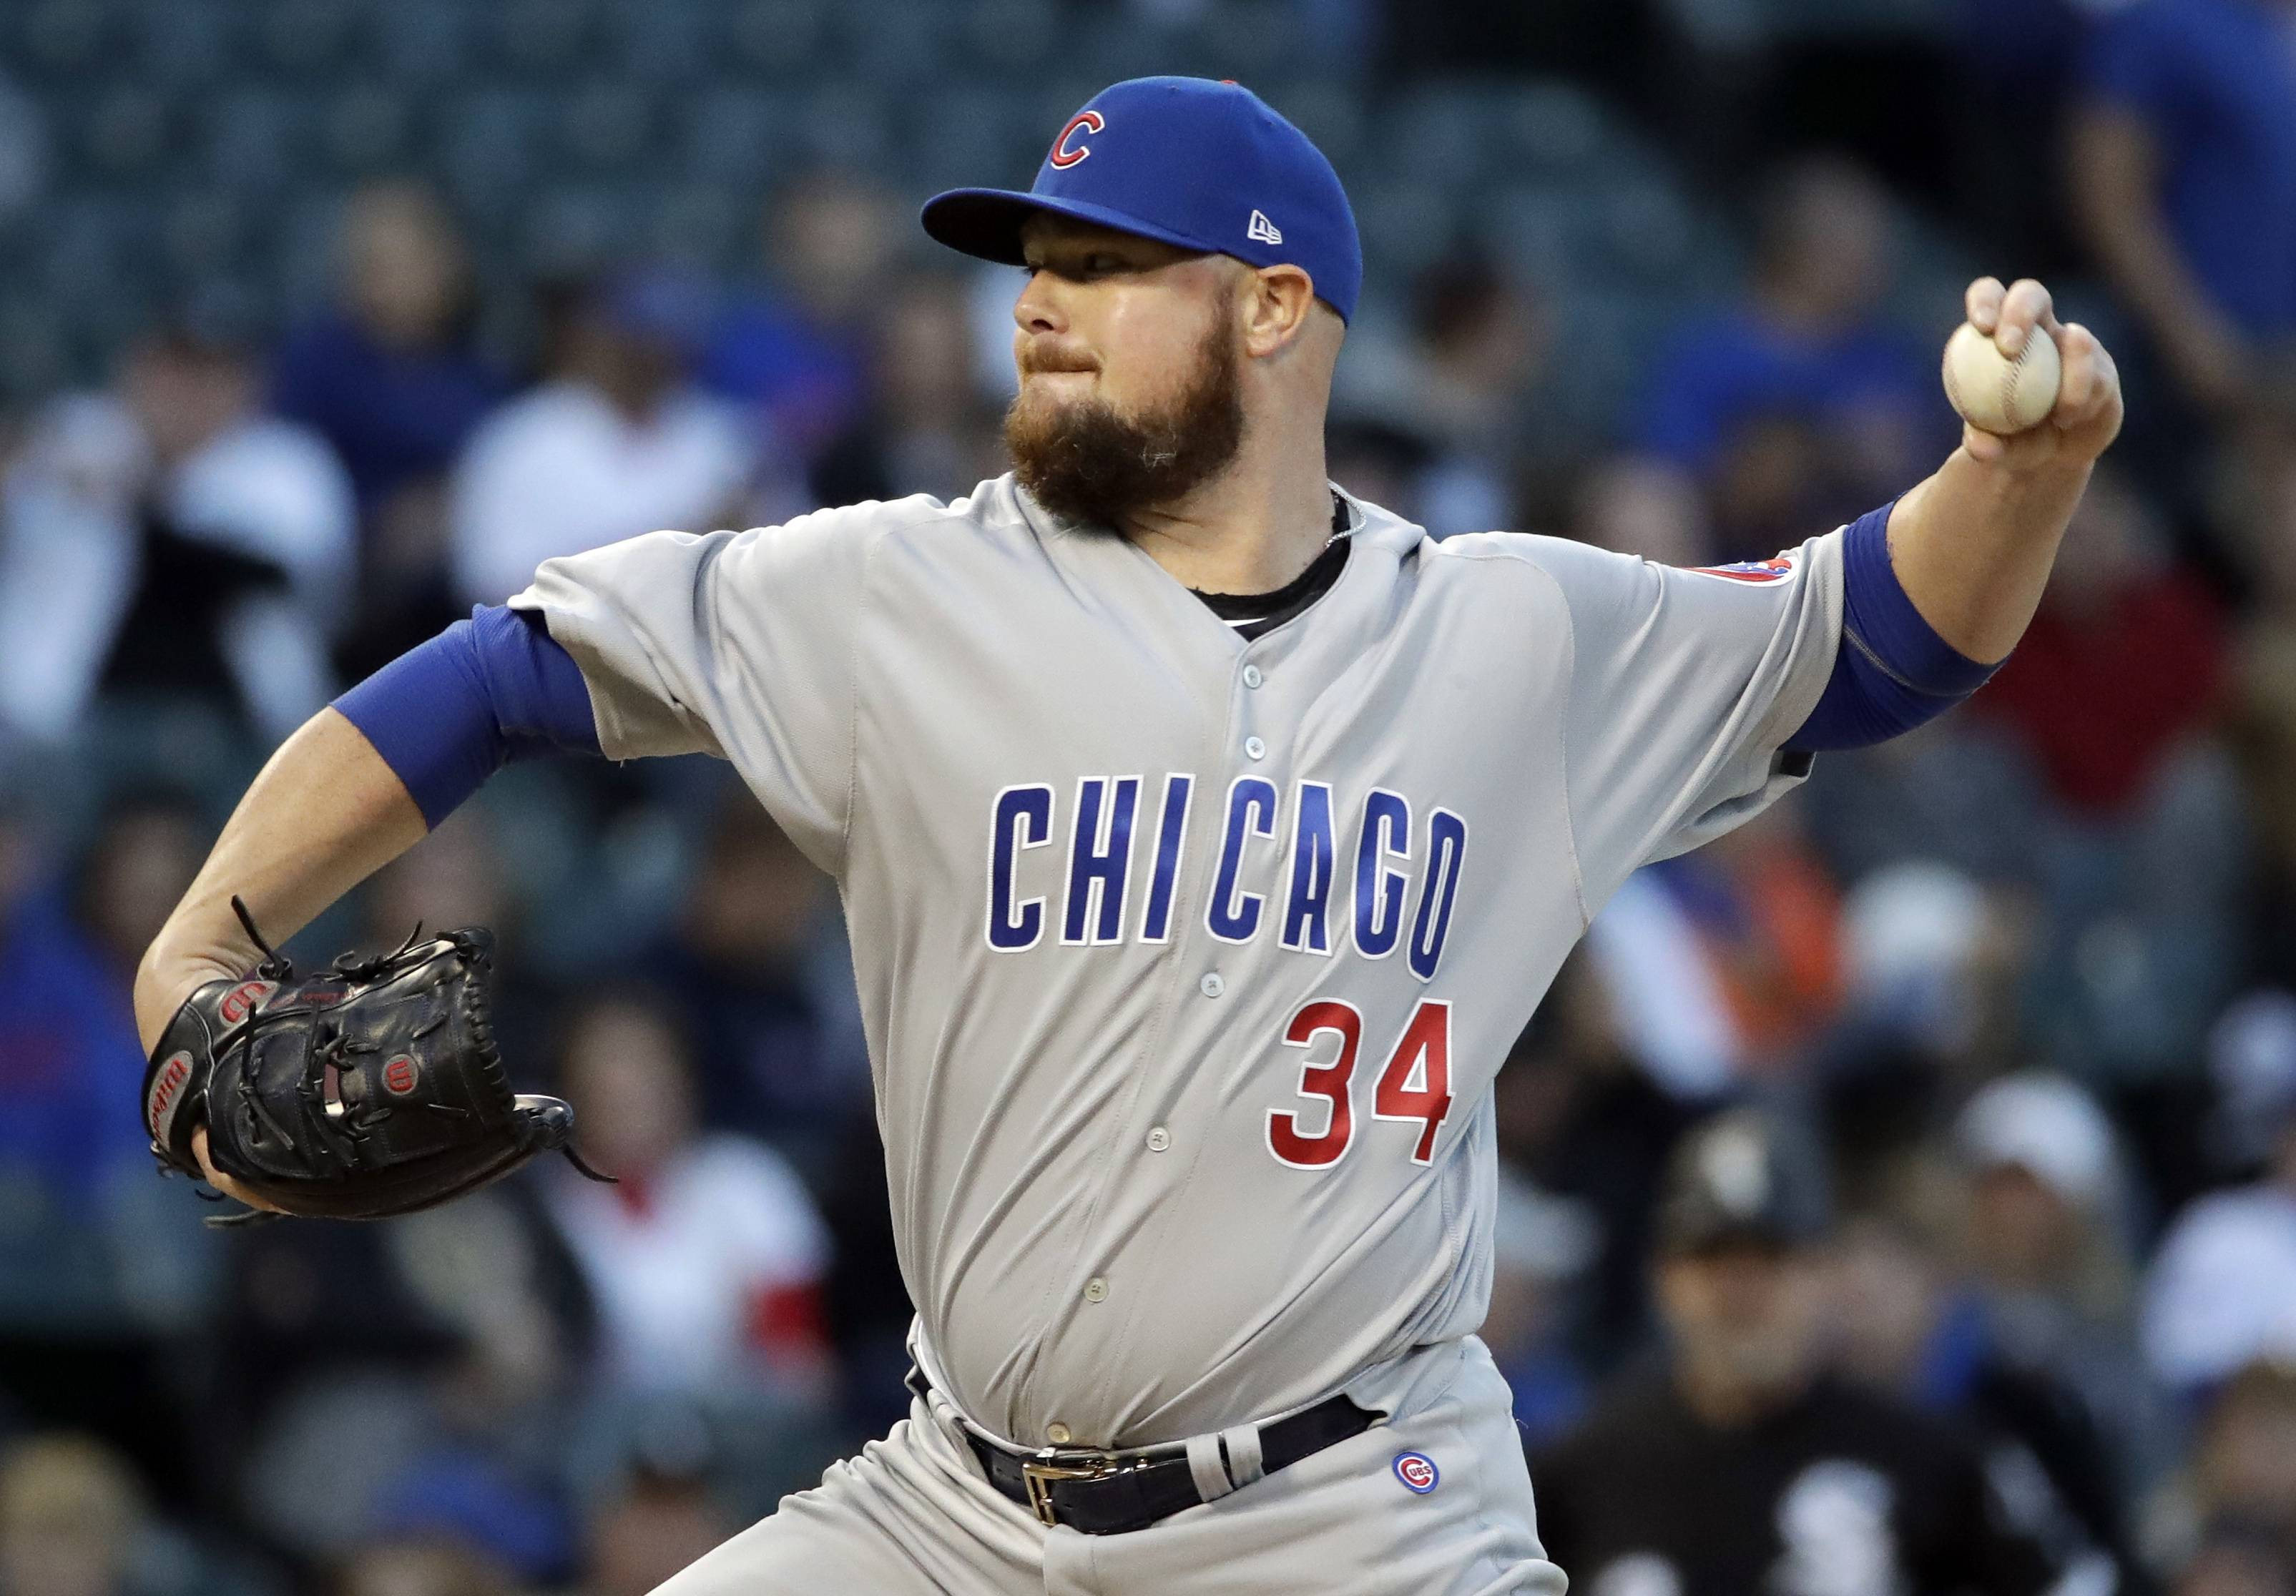 Chicago Cubs starting pitcher Jon Lester throws against the Chicago White Sox during the first inning of a baseball game Saturday, Sept. 22, 2018, in Chicago. (AP Photo/Nam Y. Huh)